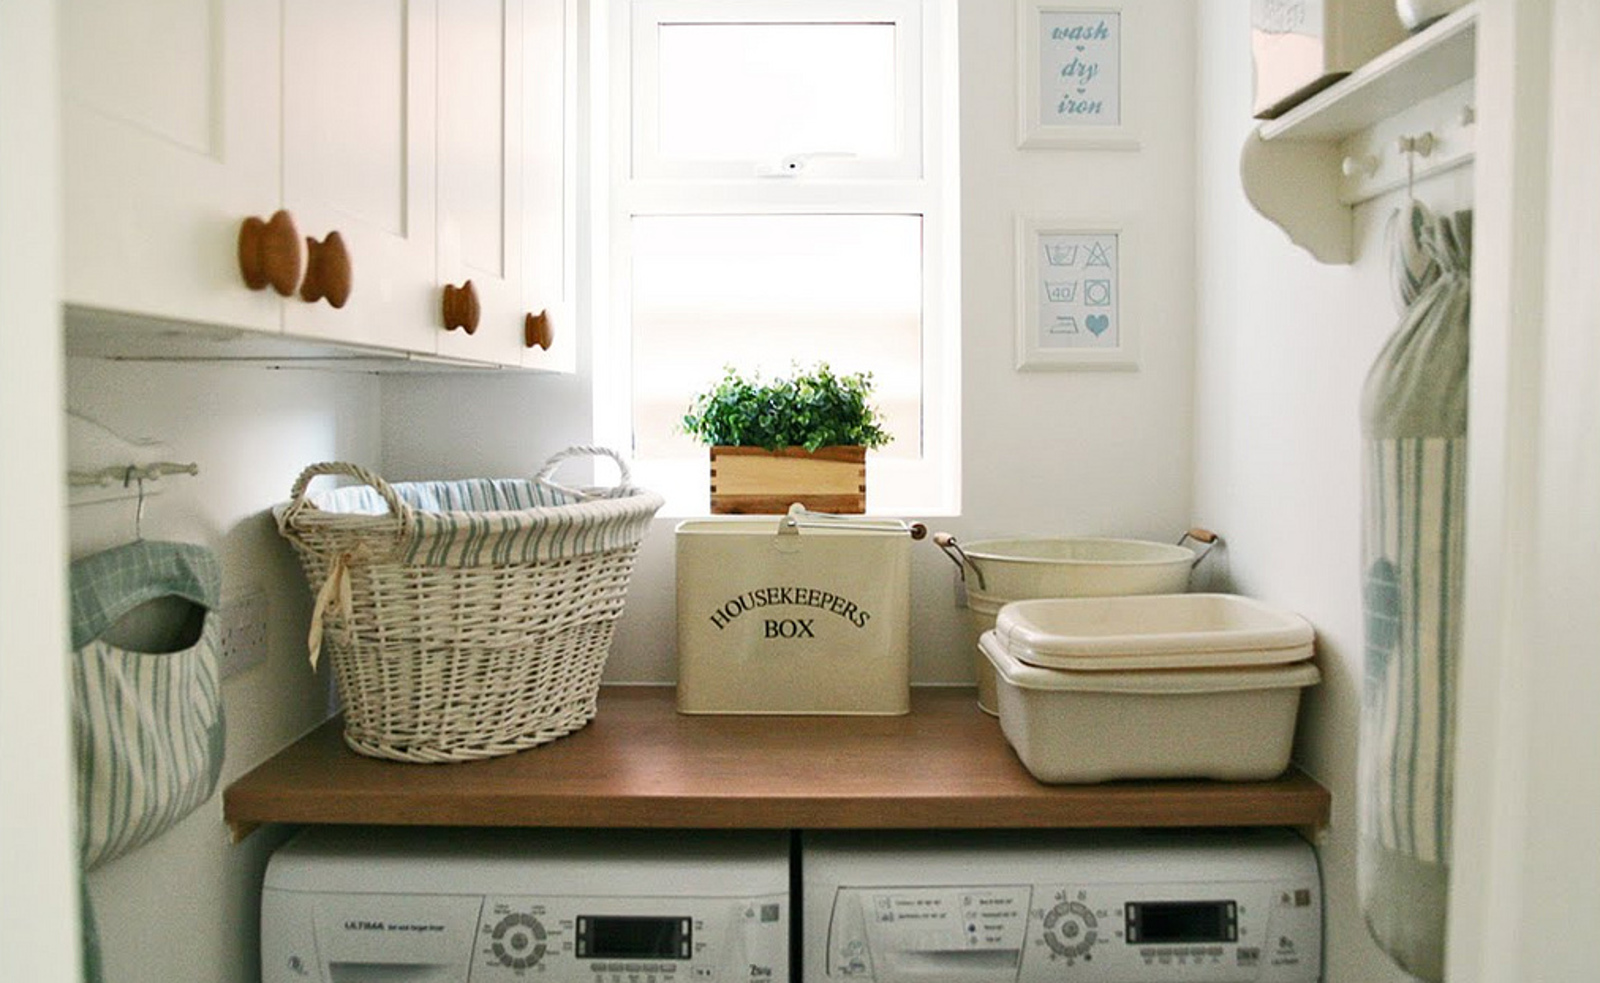 Waste-Free Laundry: How to Clean Your Clothes and Your Conscience